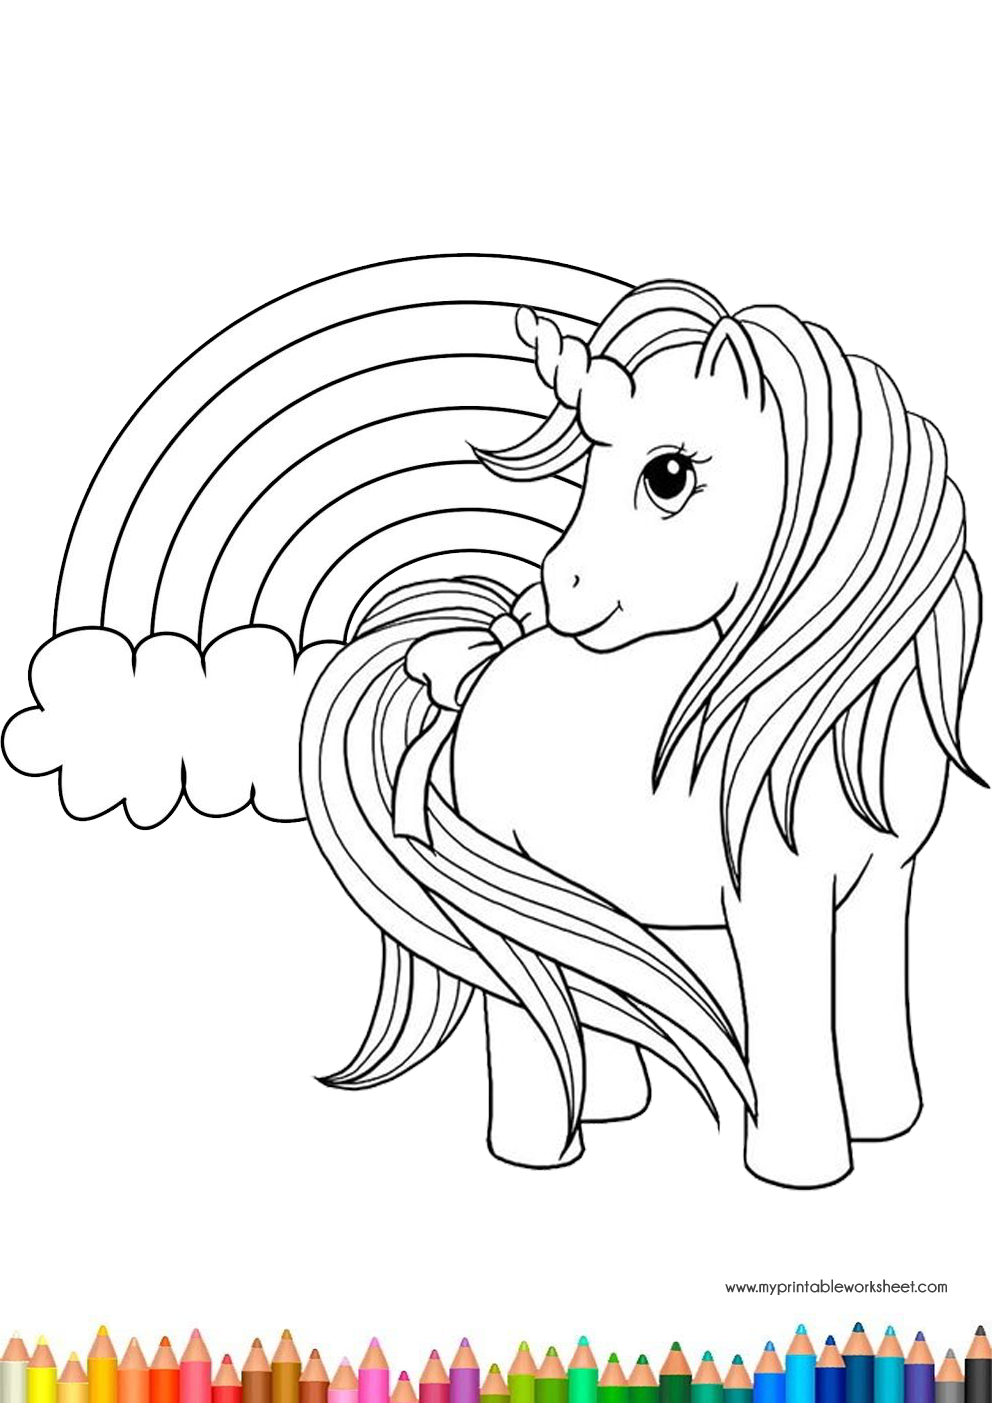 Easy Cute Unicorn Coloring Pages for Kids and Girls ...